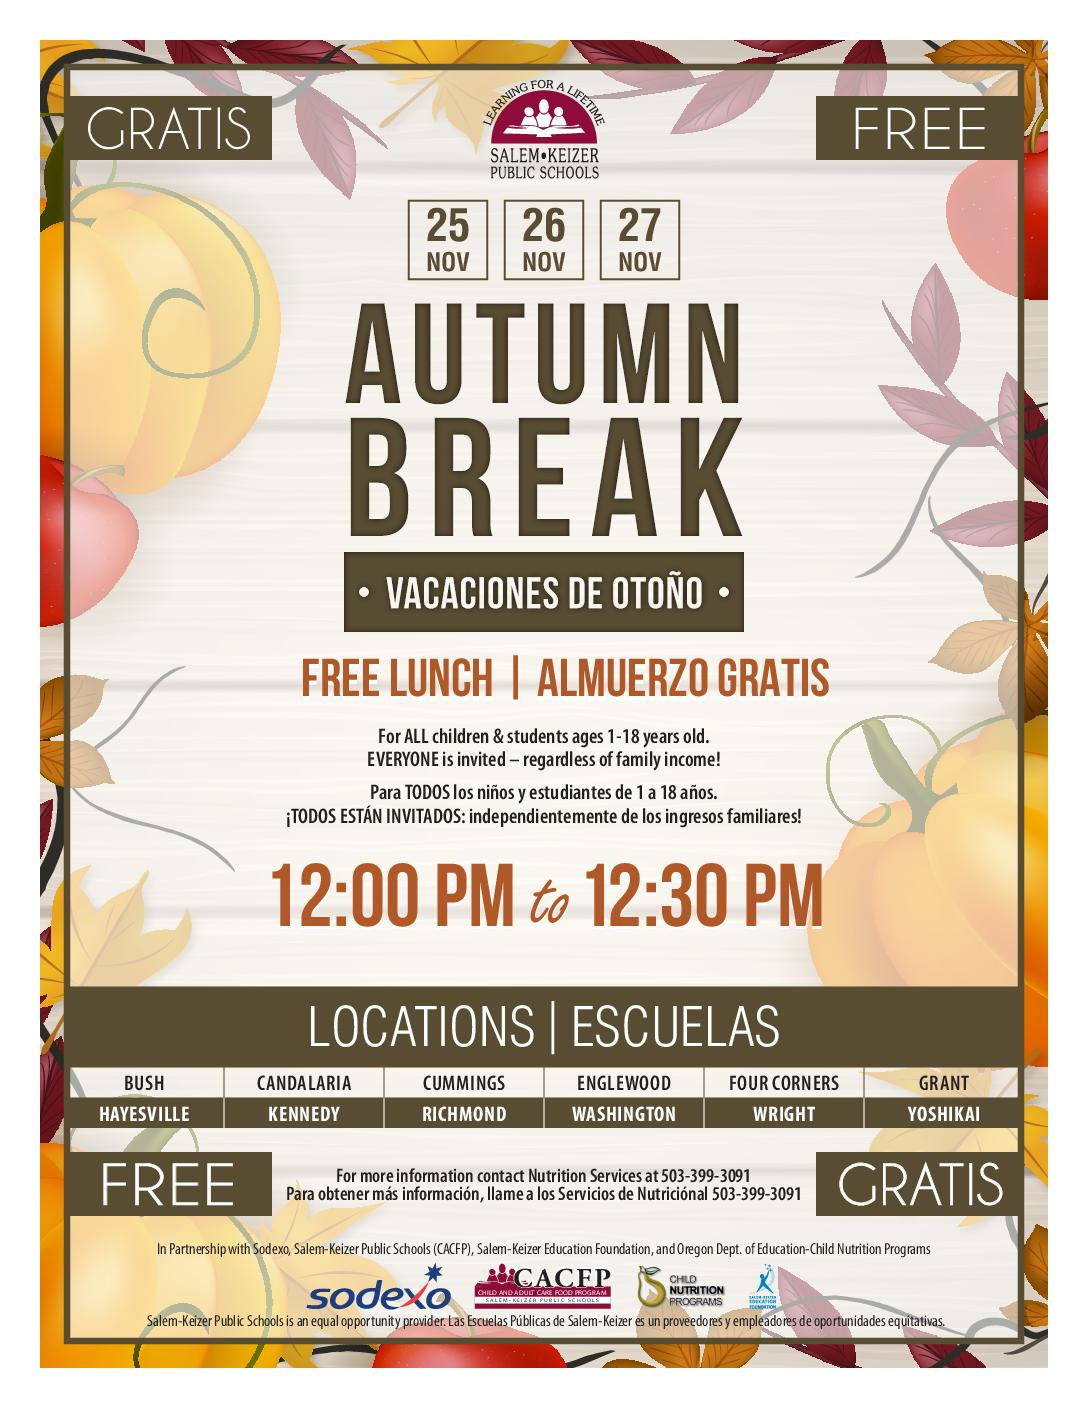 Autumn Break 2019 Elementary Flyer